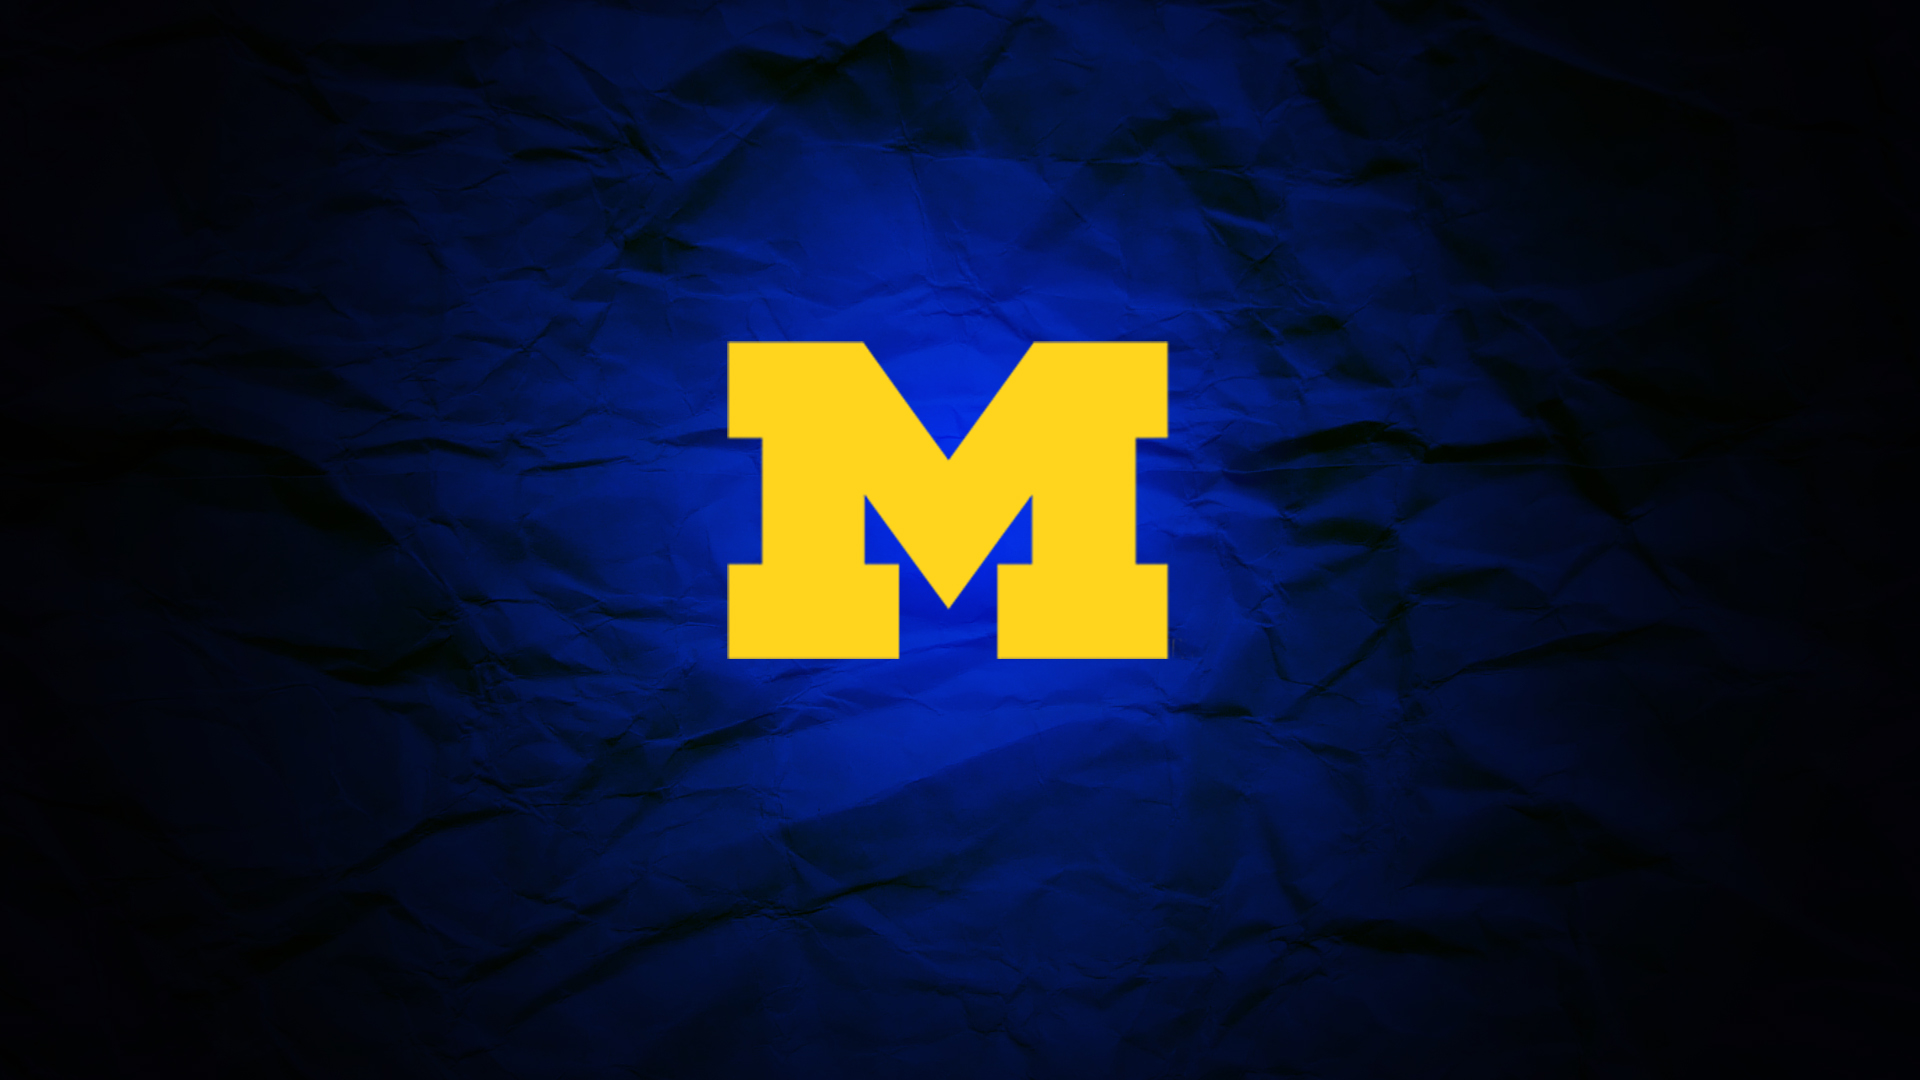 50] University of Michigan Screensaver Wallpaper on WallpaperSafari 1920x1080